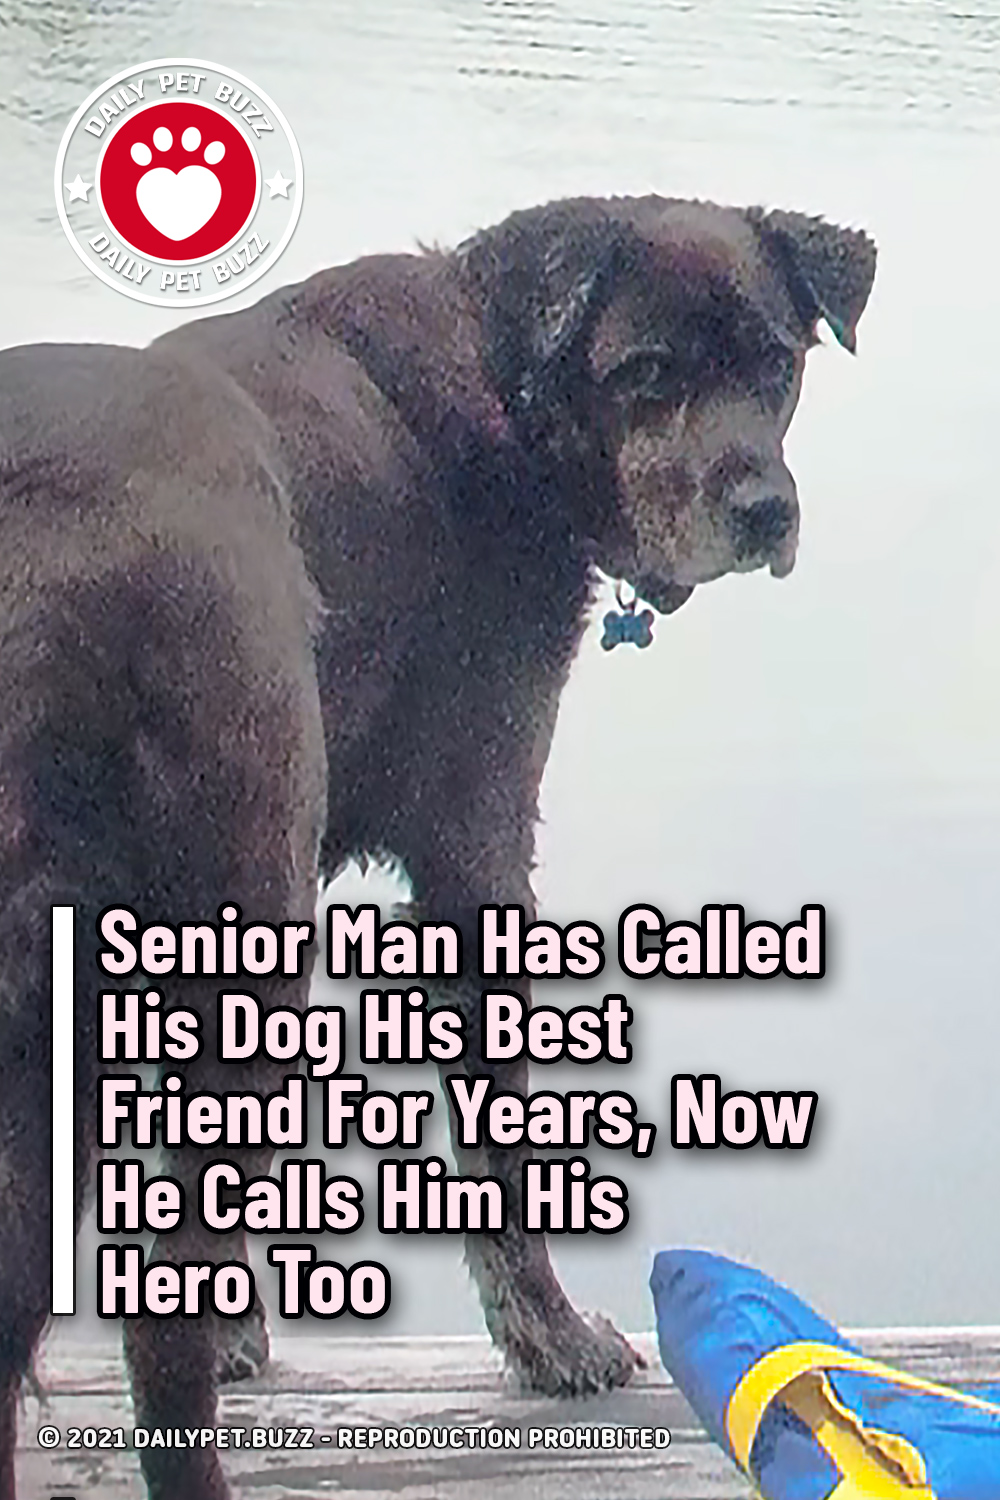 Senior Man Has Called His Dog His Best Friend For Years, Now He Calls Him His Hero Too